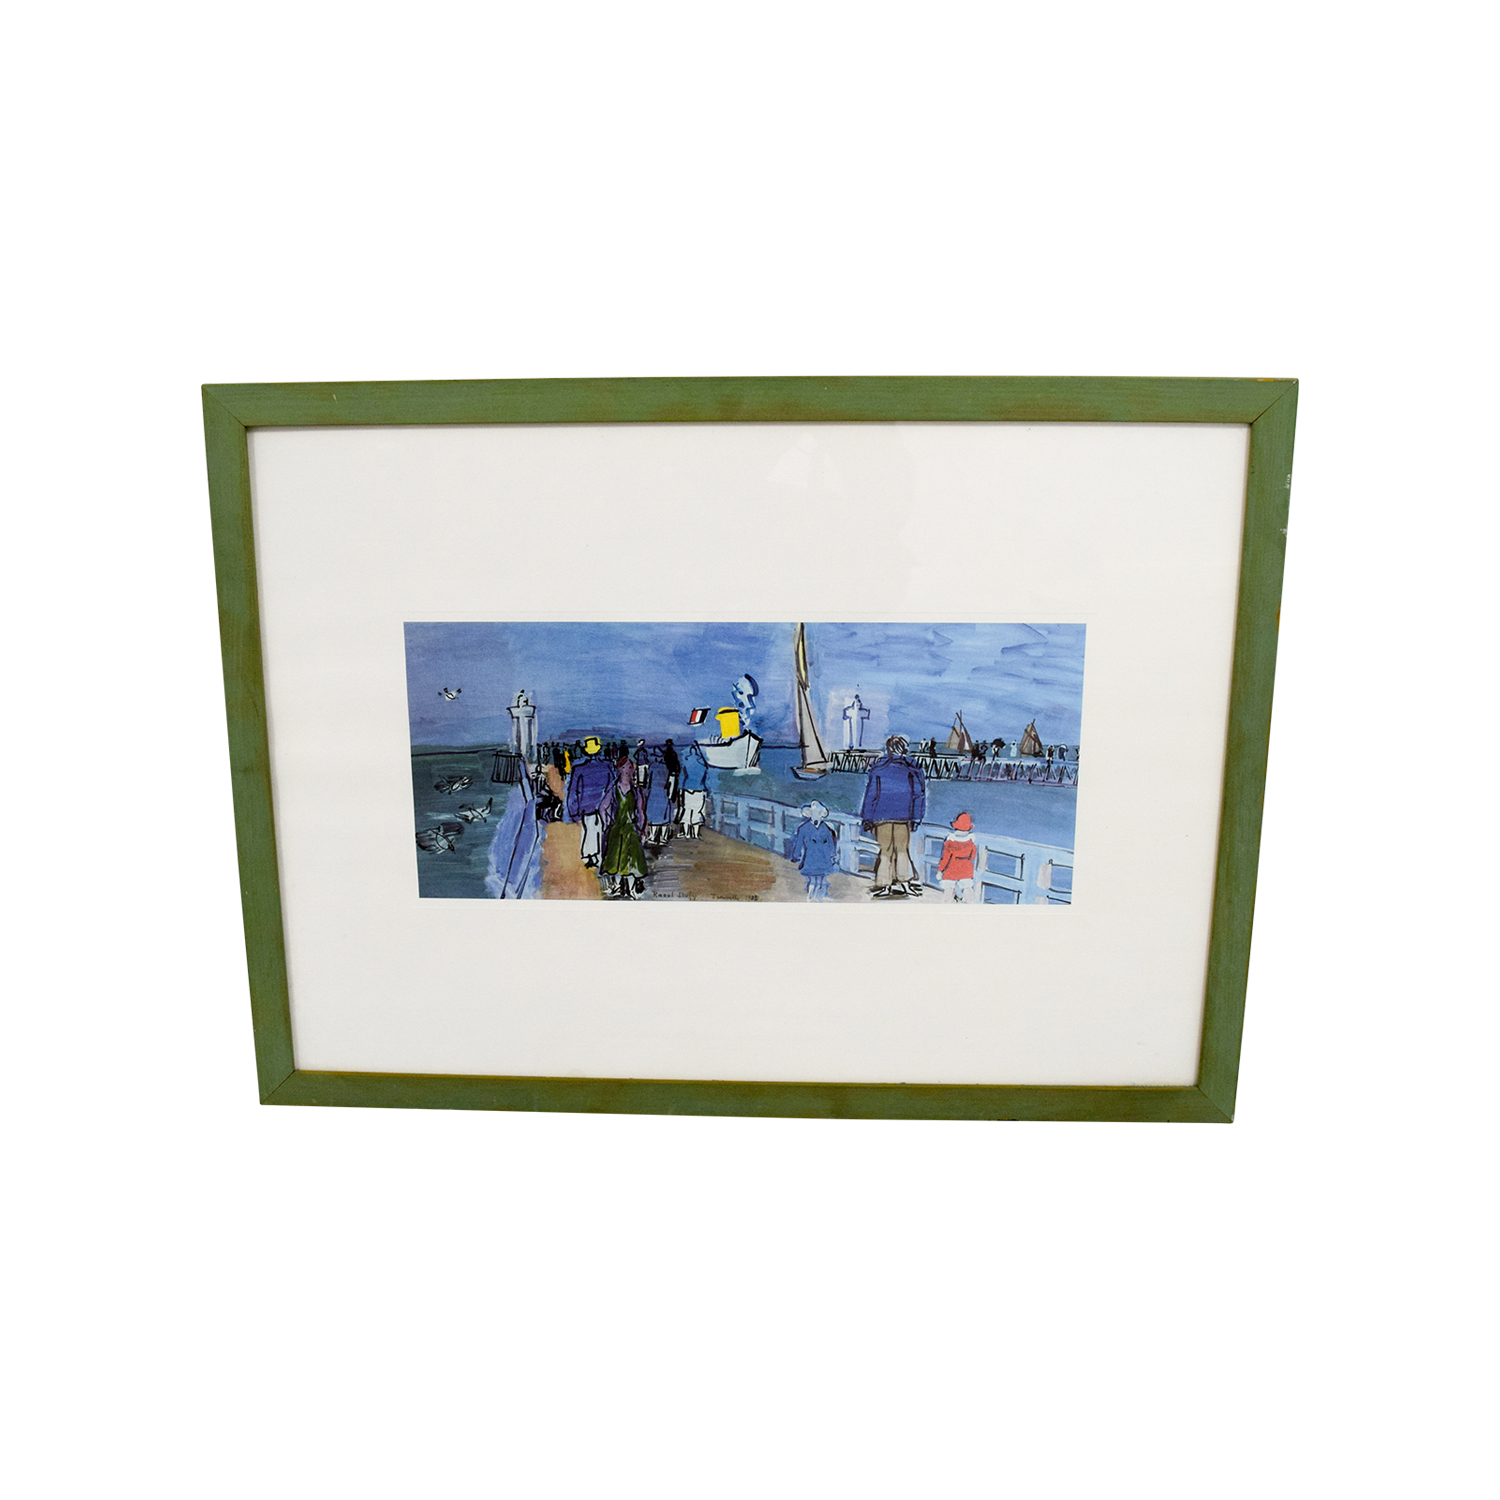 France Boat Deck Framed Picture for sale